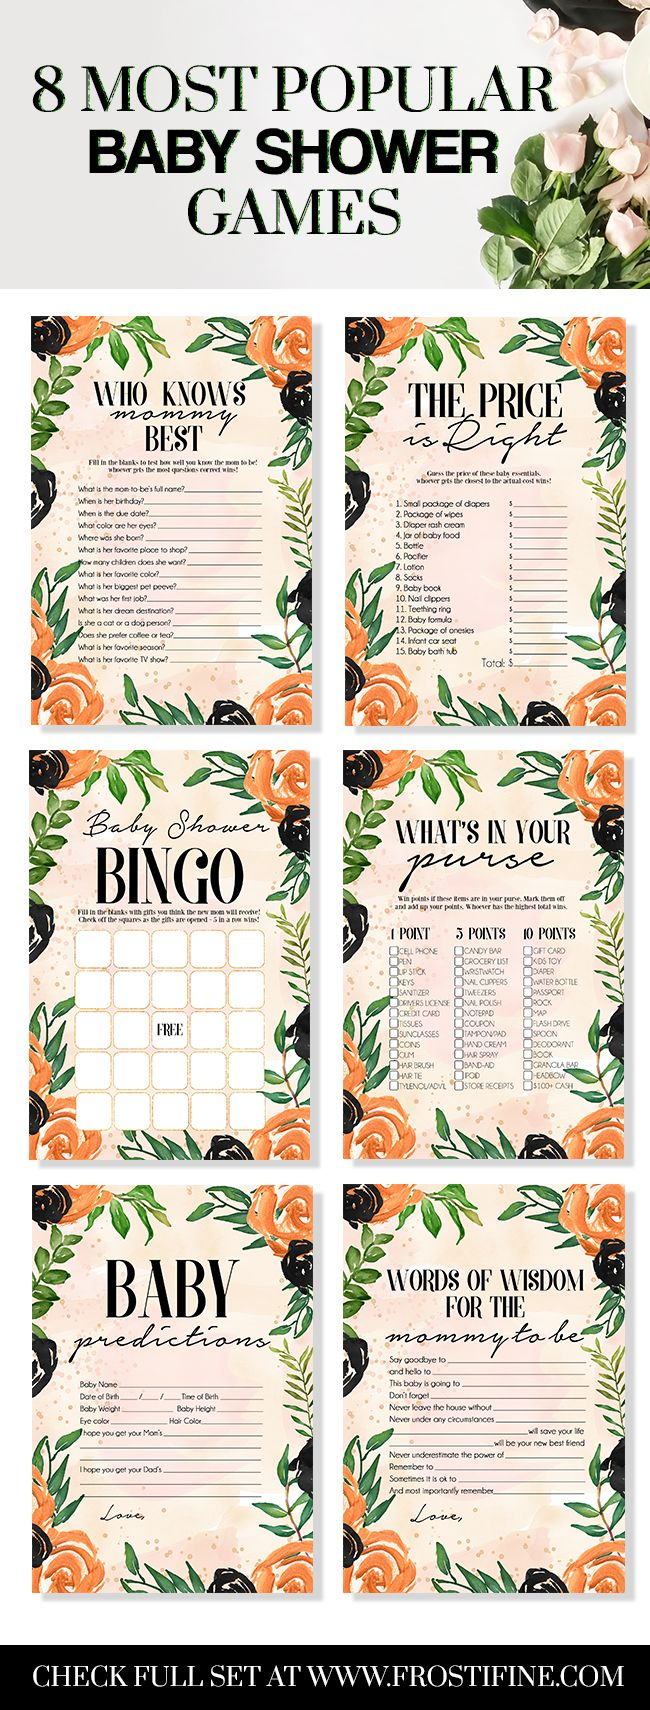 Modern boho baby shower games ready for DIY baby shower celebration. 8 most popular games in the set includes baby shower bingo, baby predictions, advice for new mom to be and many more game cards you will actually use.